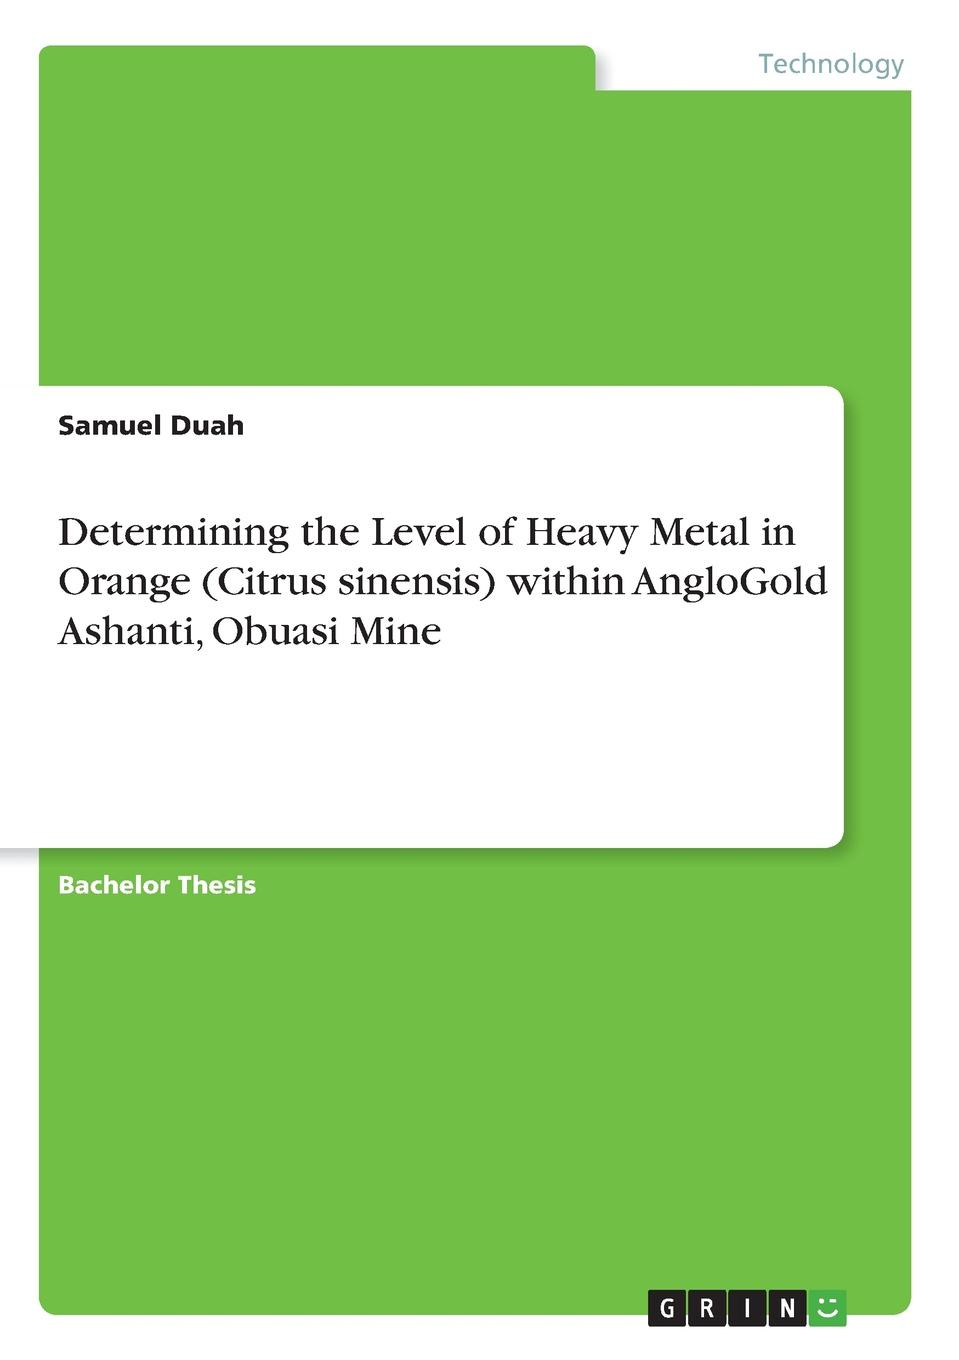 Samuel Duah Determining the Level of Heavy Metal in Orange (Citrus sinensis) within AngloGold Ashanti, Obuasi Mine mostafa redwan hardpan formation in mine tailings